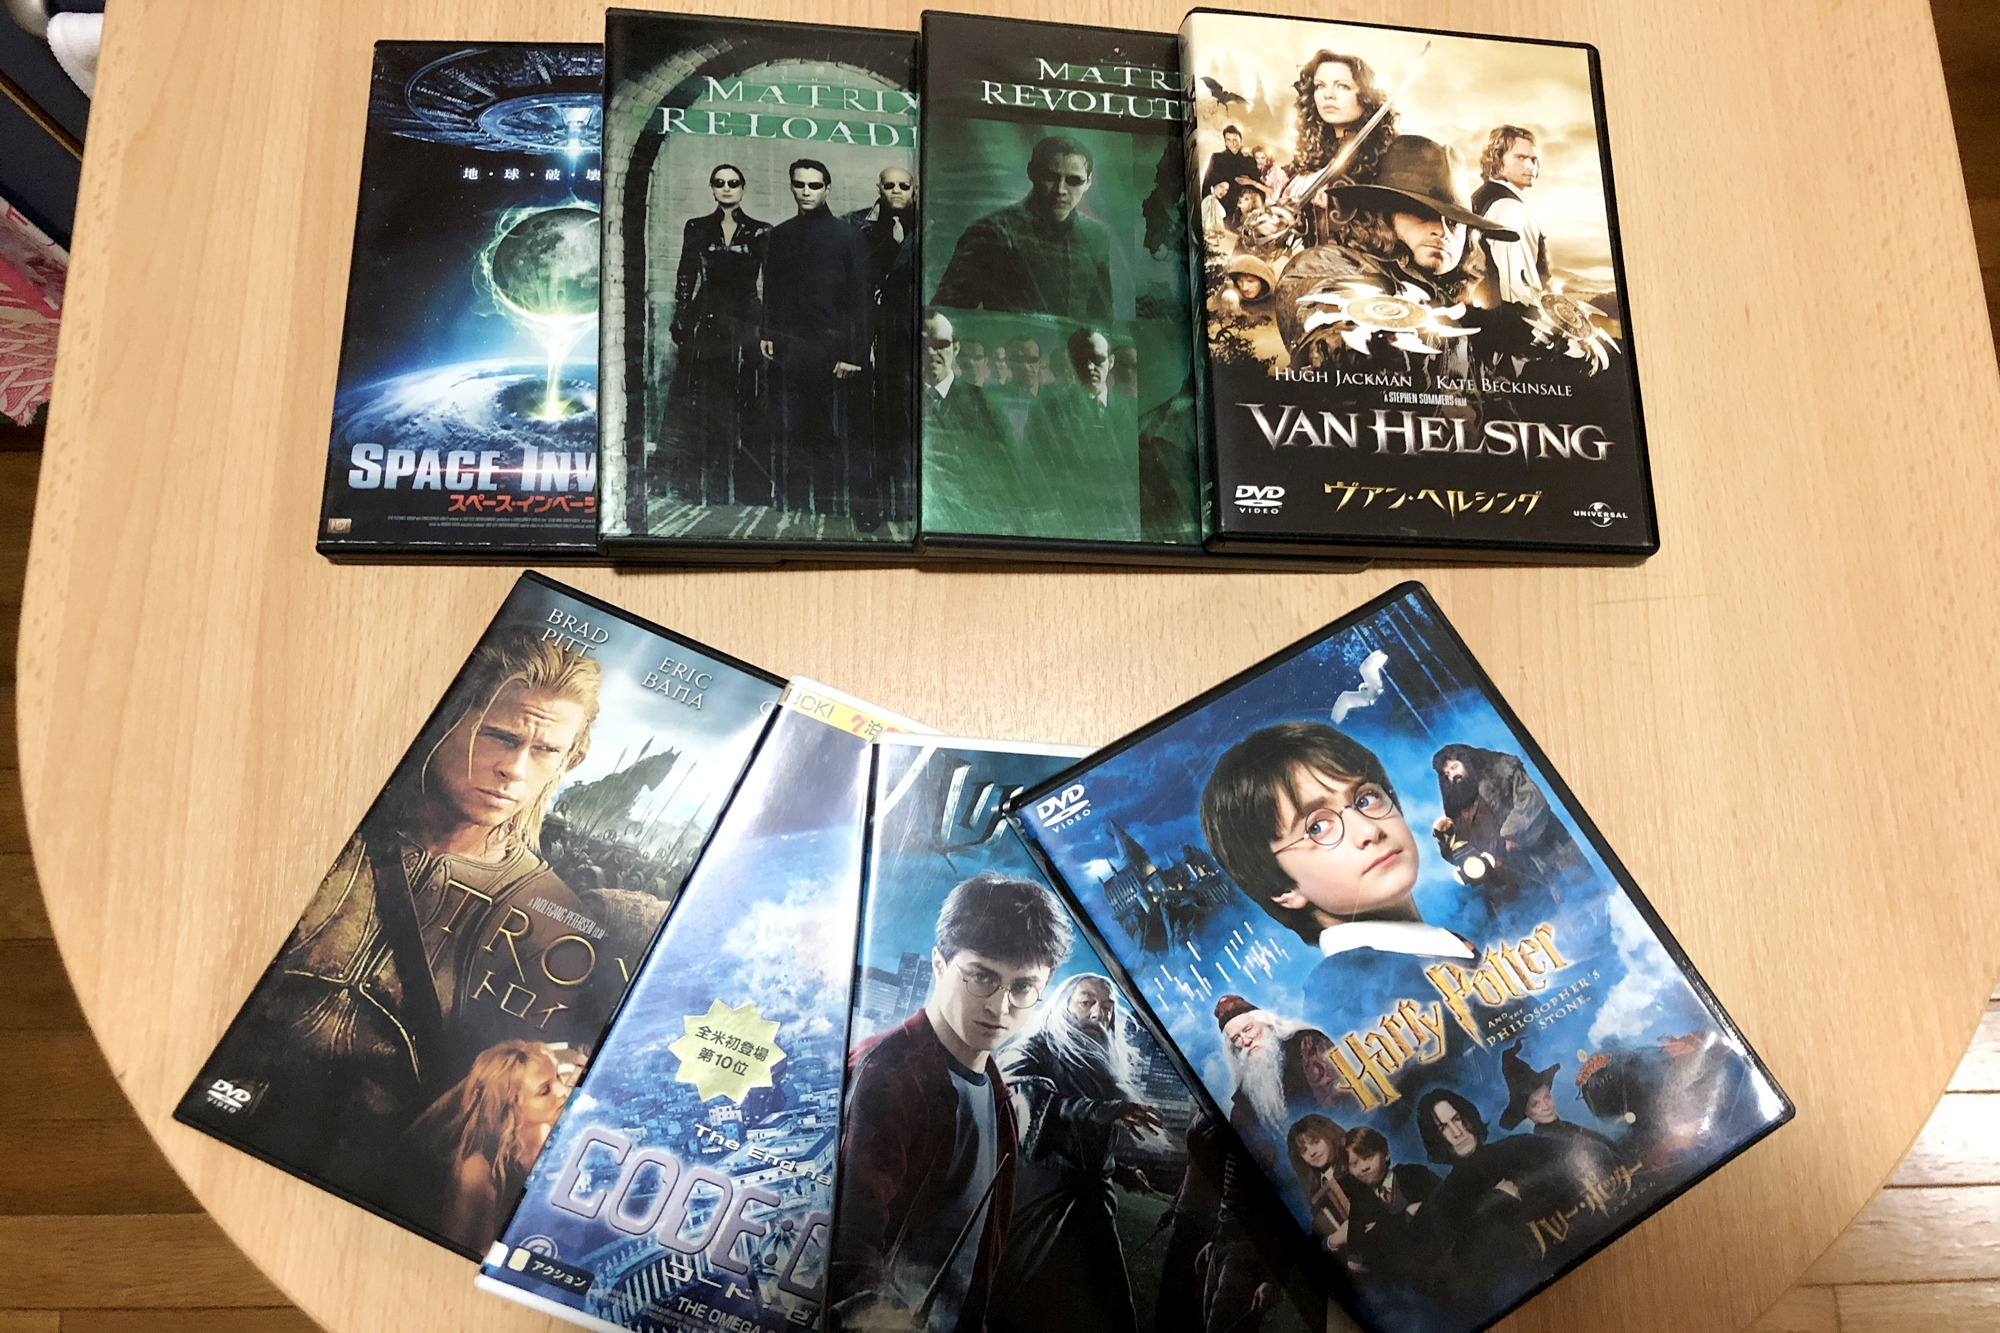 There are some DVDs in the room. Enjoy watching the movie. 部屋に数枚のDVDをご用意していますので、映画鑑賞を楽しむことができます。